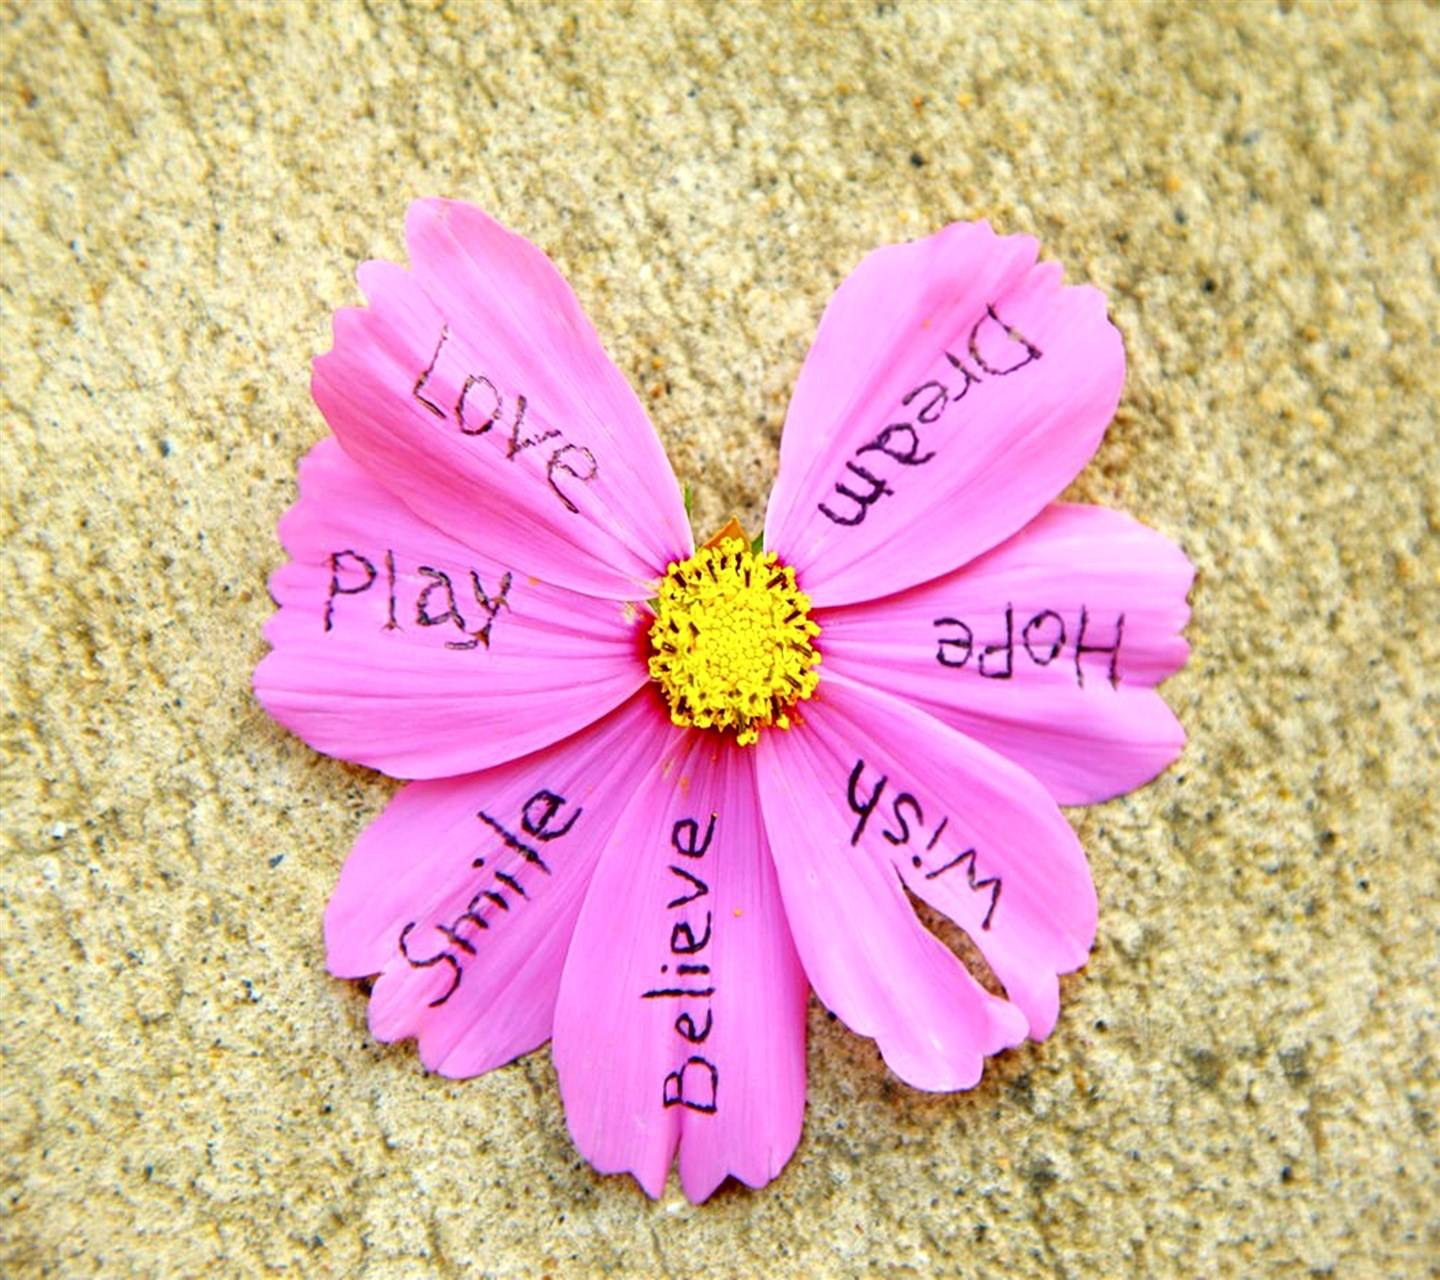 Love Play Smile